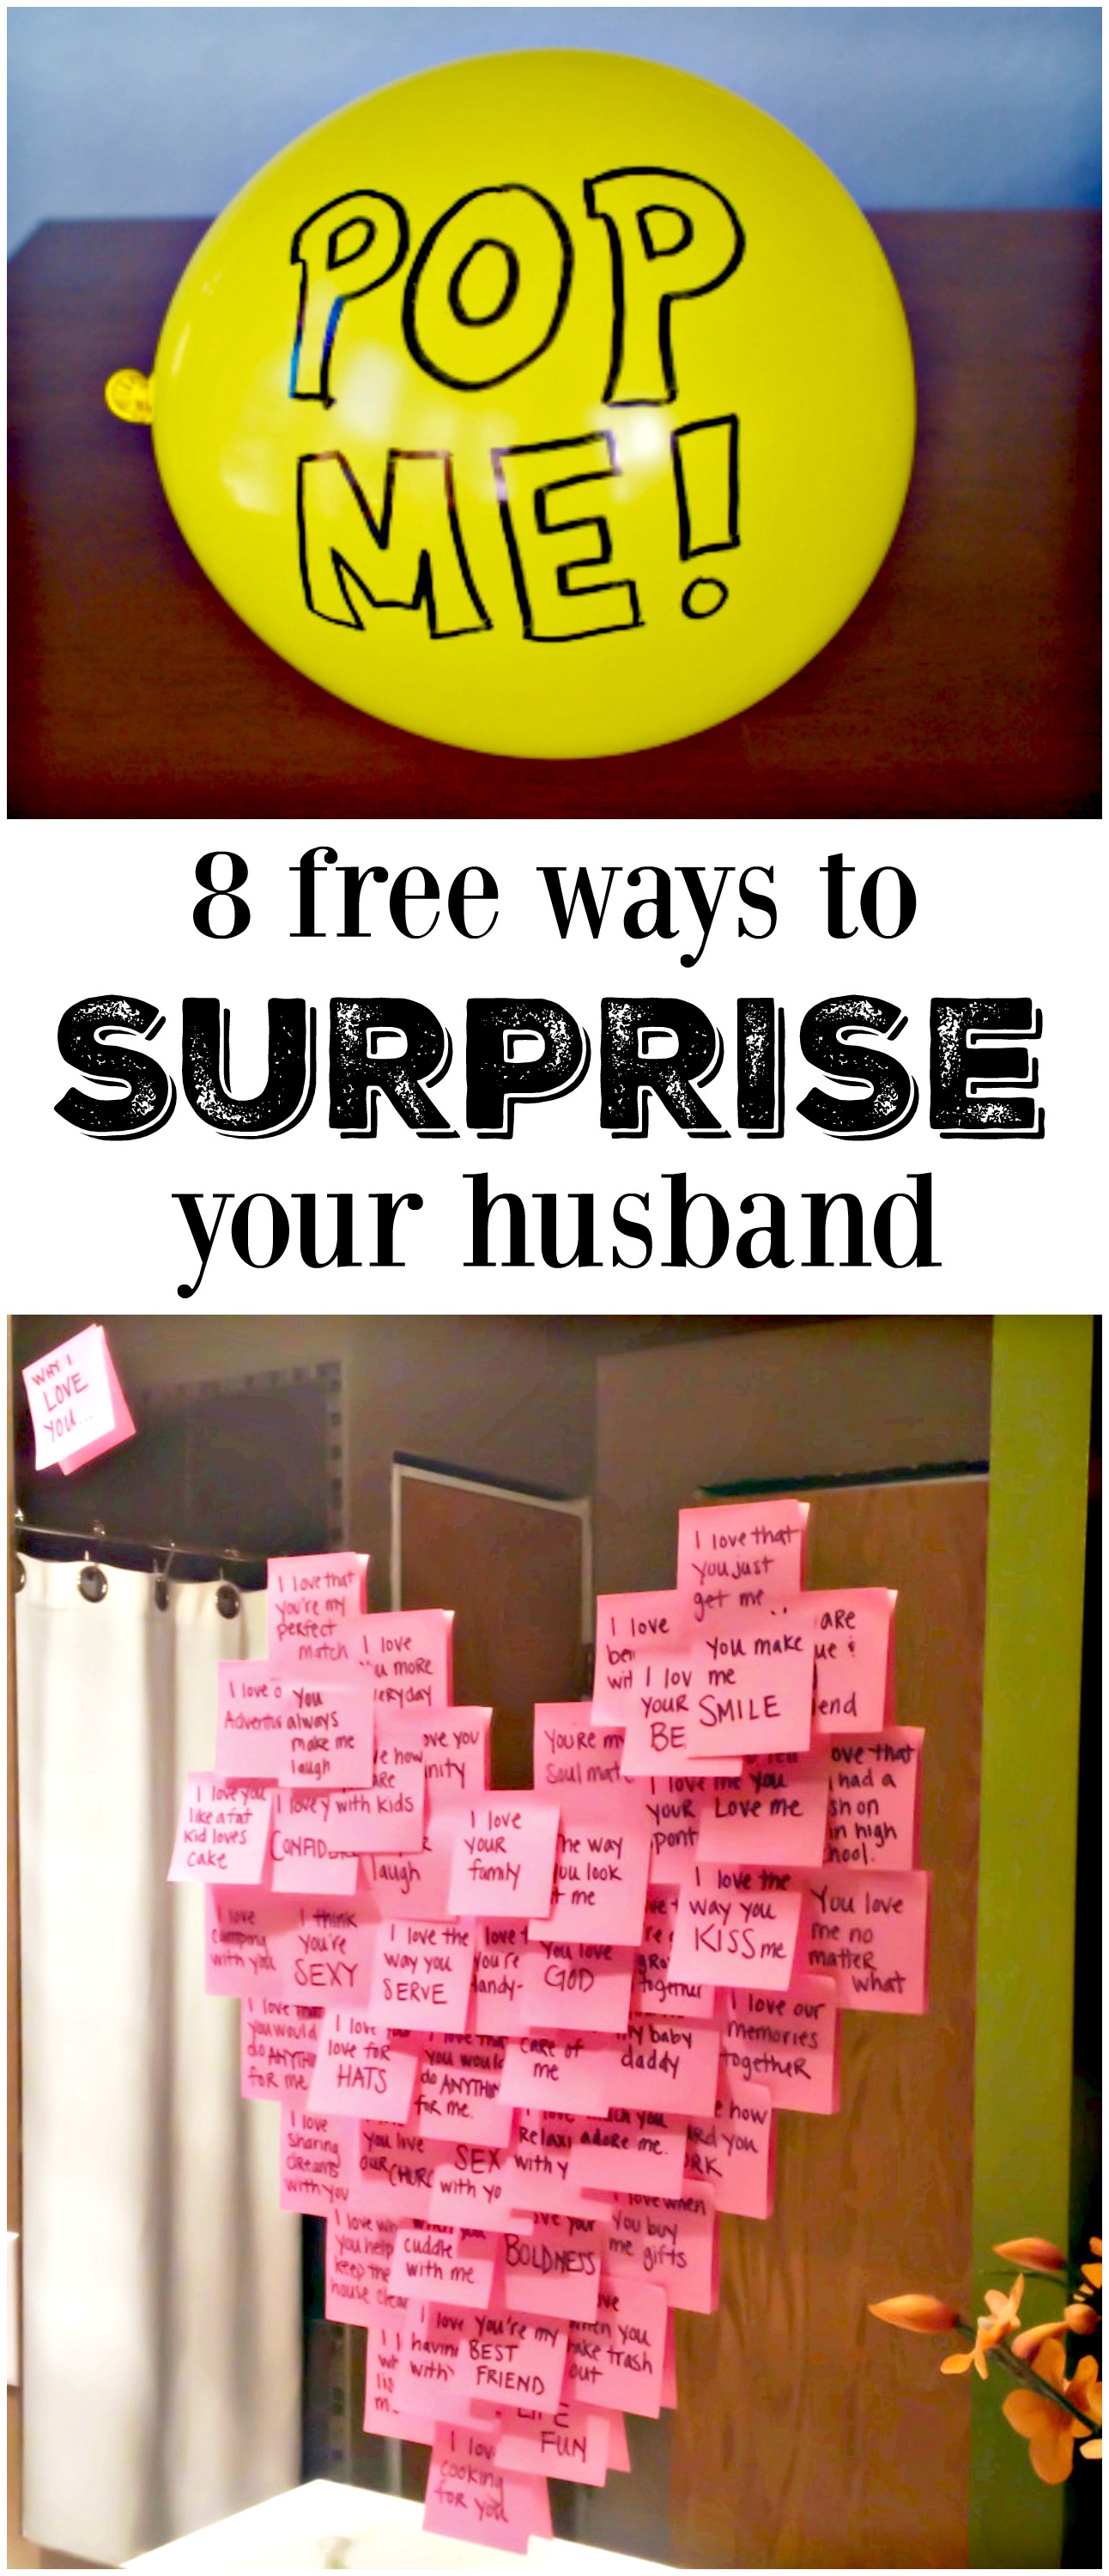 8 Free Ways To Surprise Your Husband And Totally Make His Day